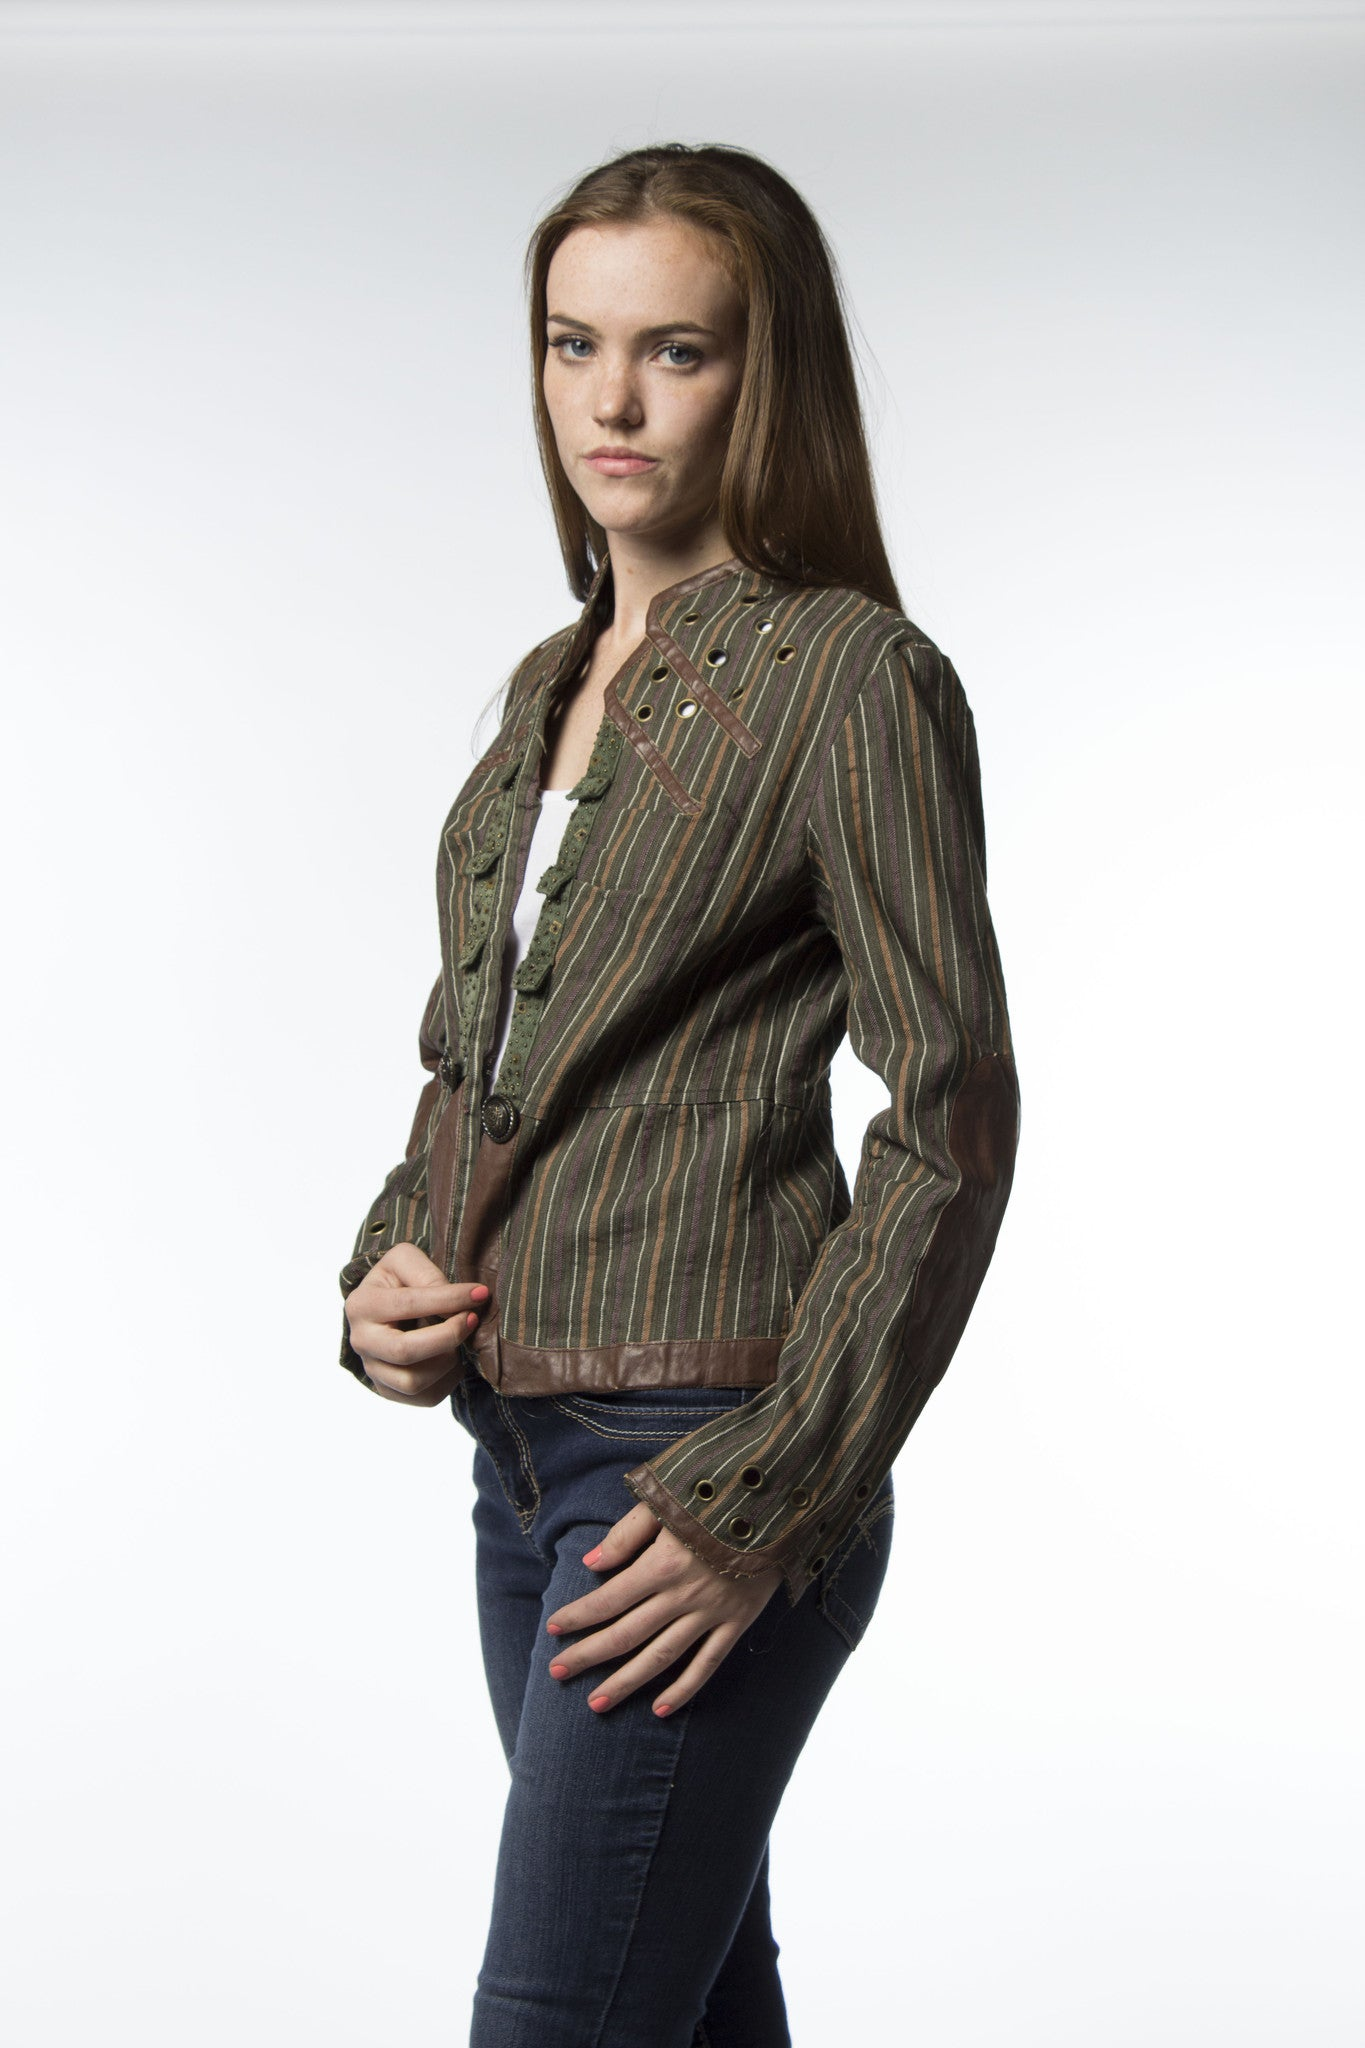 olive green with stripes cotton jacket